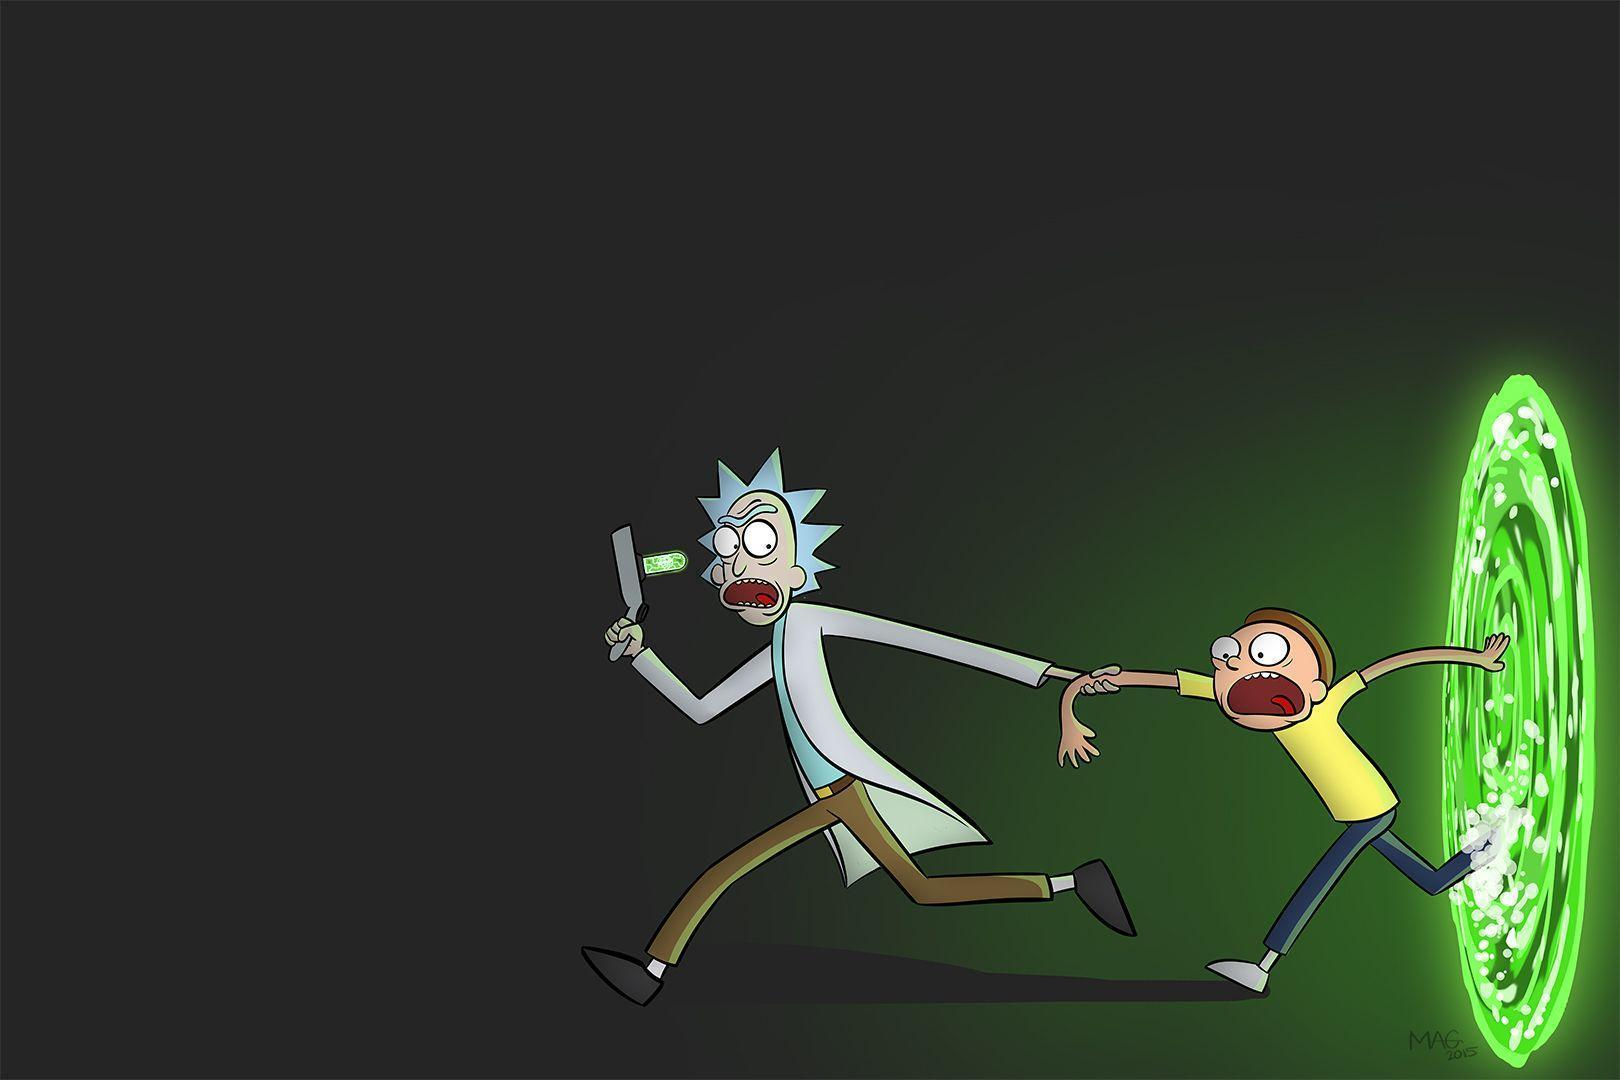 Rick and Morty_01 (Duel Monitor Wallpaper) by MikeAGar85 on Newgrounds